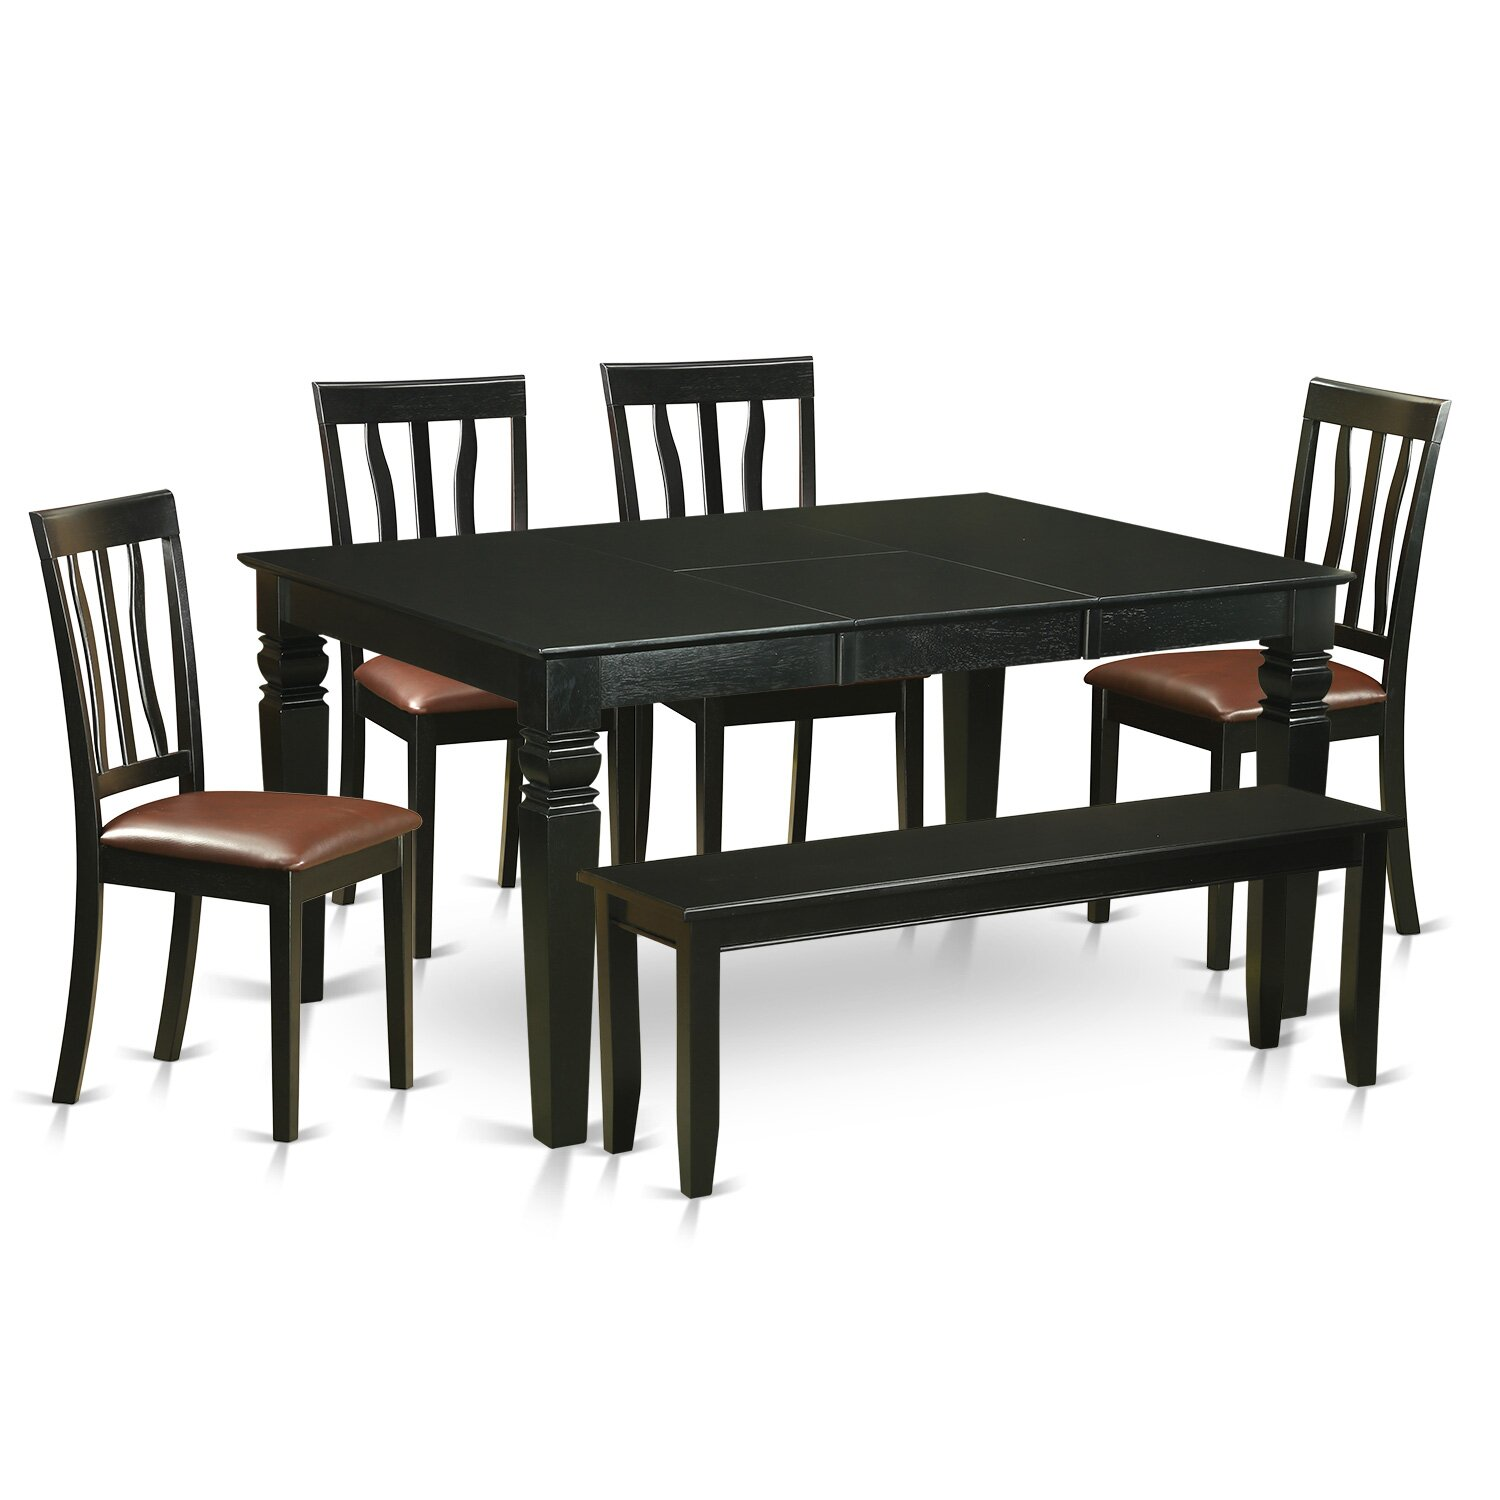 Wooden importers weston 6 piece dining set wayfair for Dining room table with 6 chairs